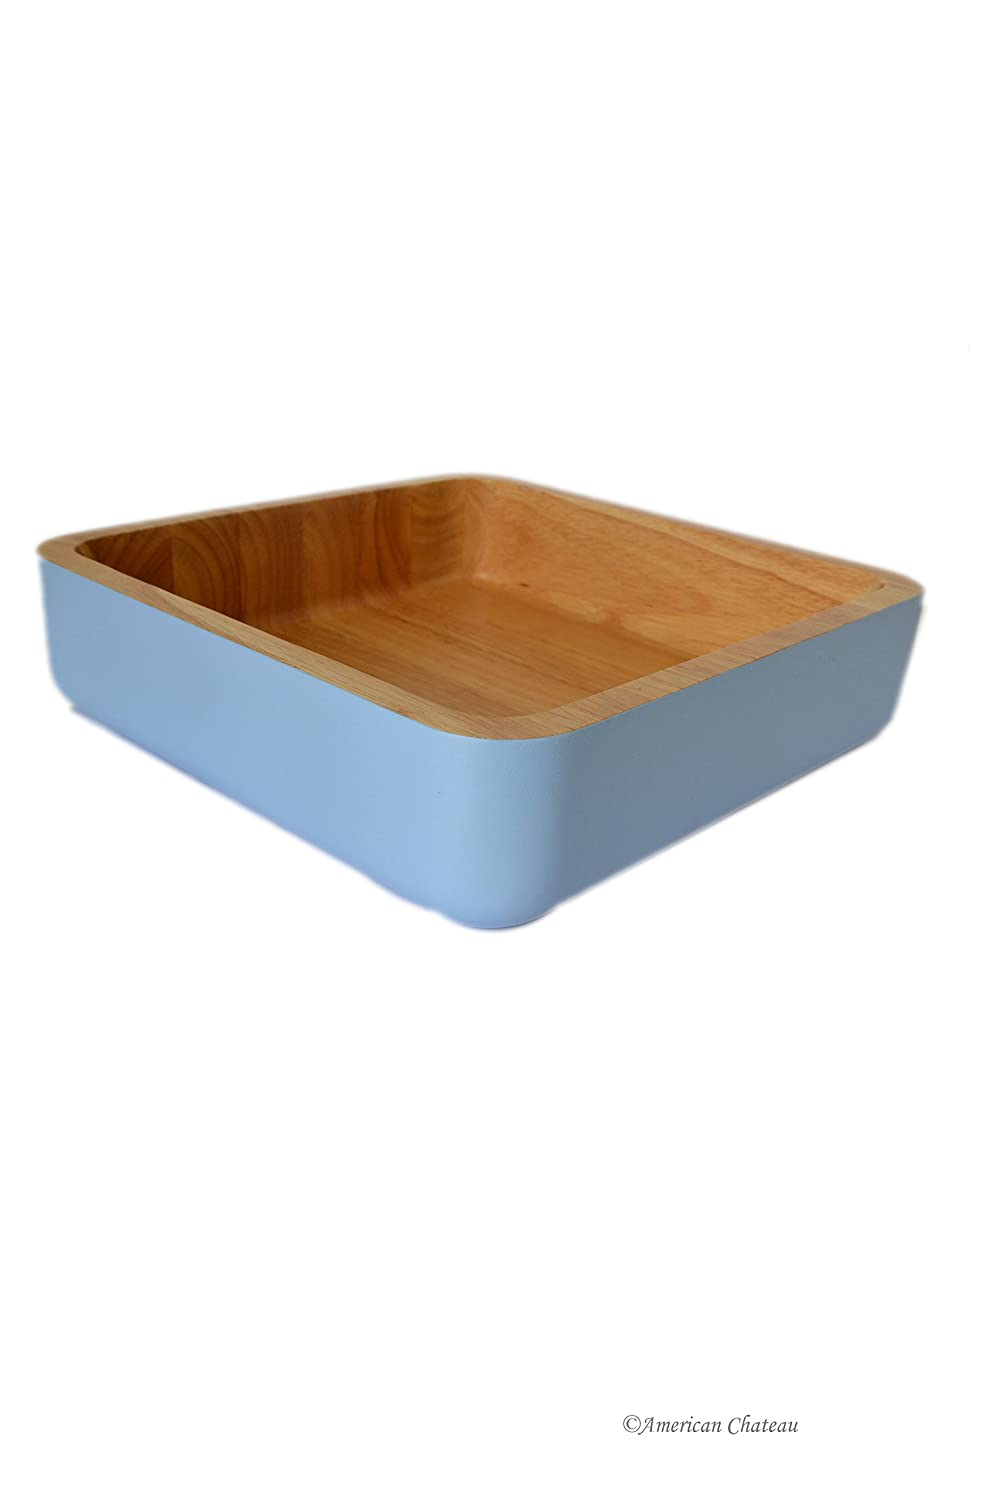 Hand Made Baby-Blue Square Large Wood Salad Serving Food Fruit Bowl Dish American Chateau